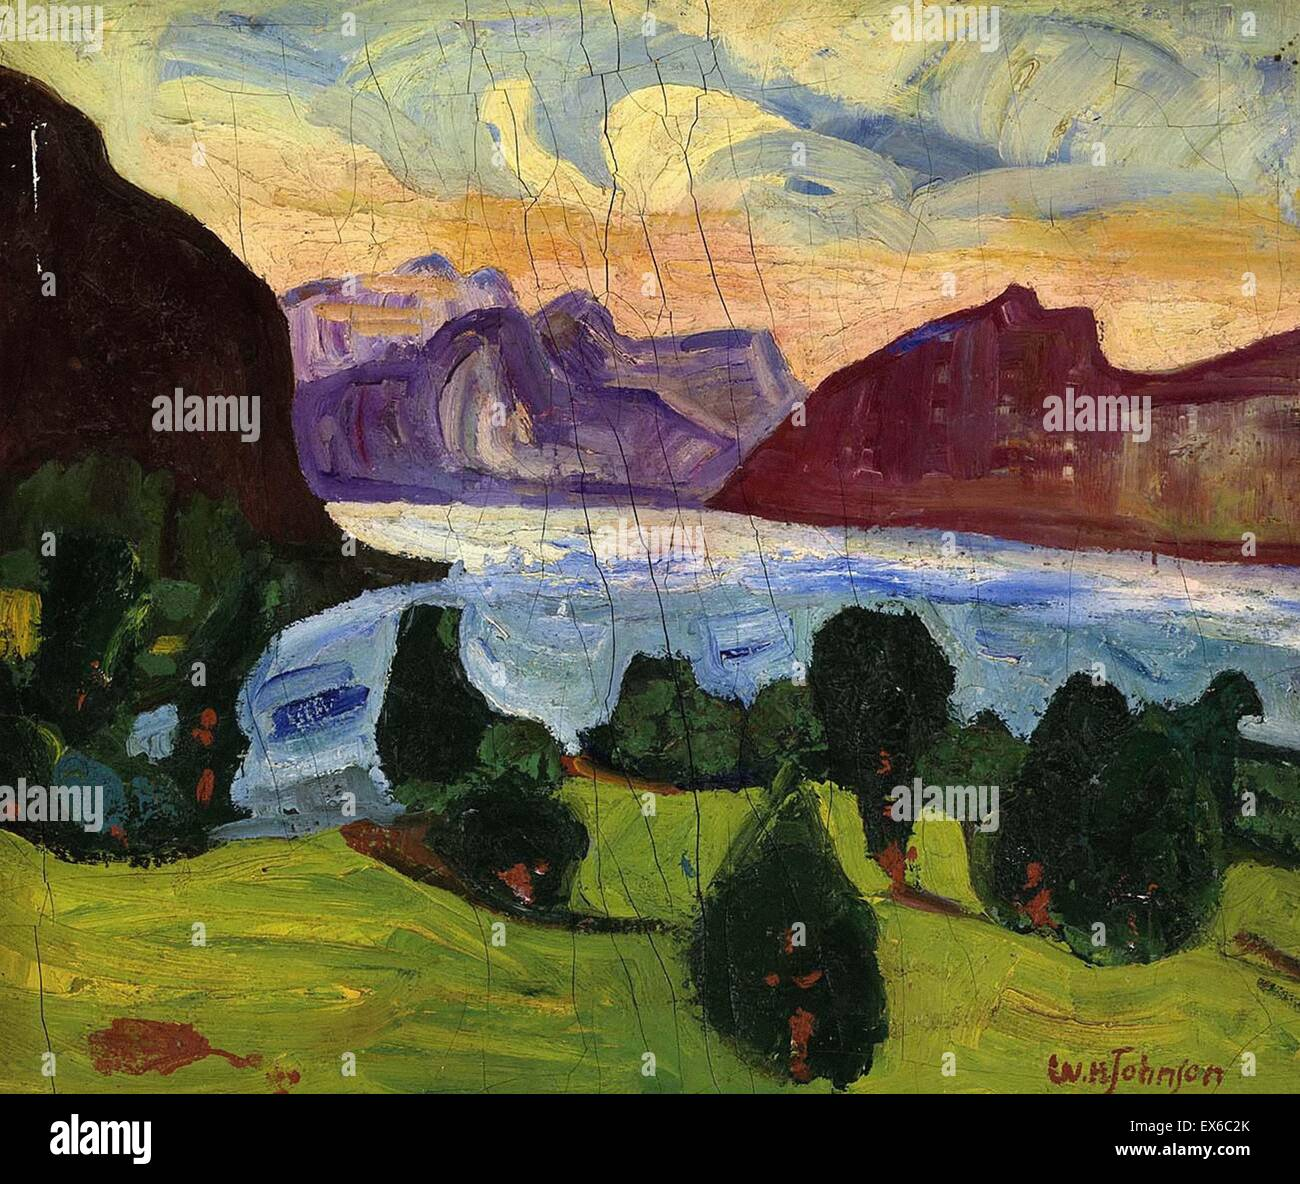 William H. Johnson  Landscape - Stock Image